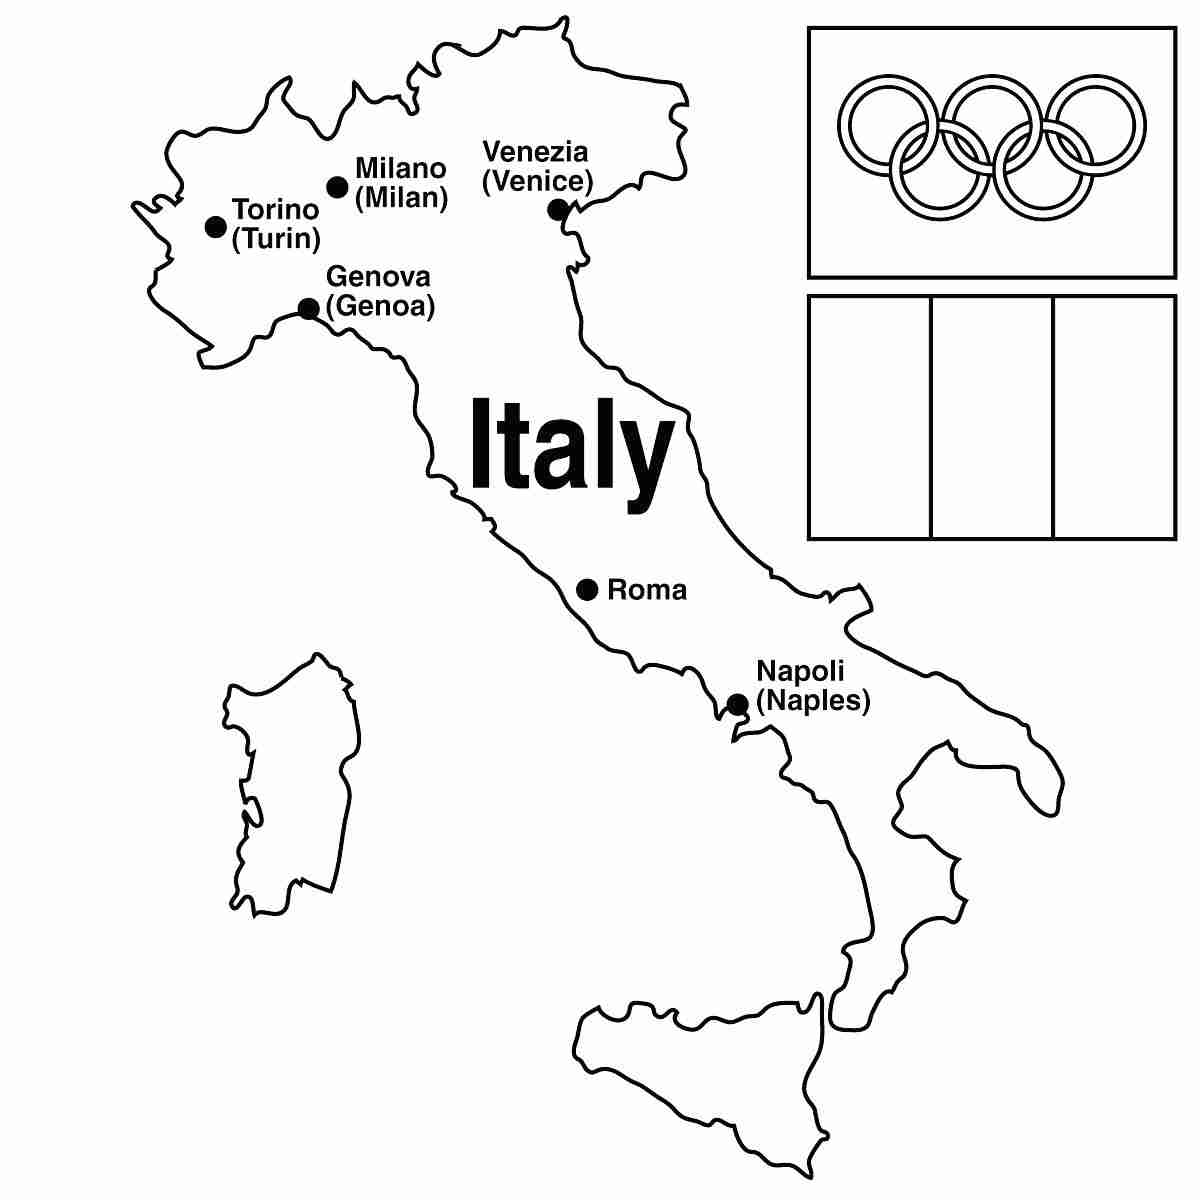 Printable Map Of Italy Free.The Best Free Italy Coloring Page Images Download From 158 Free